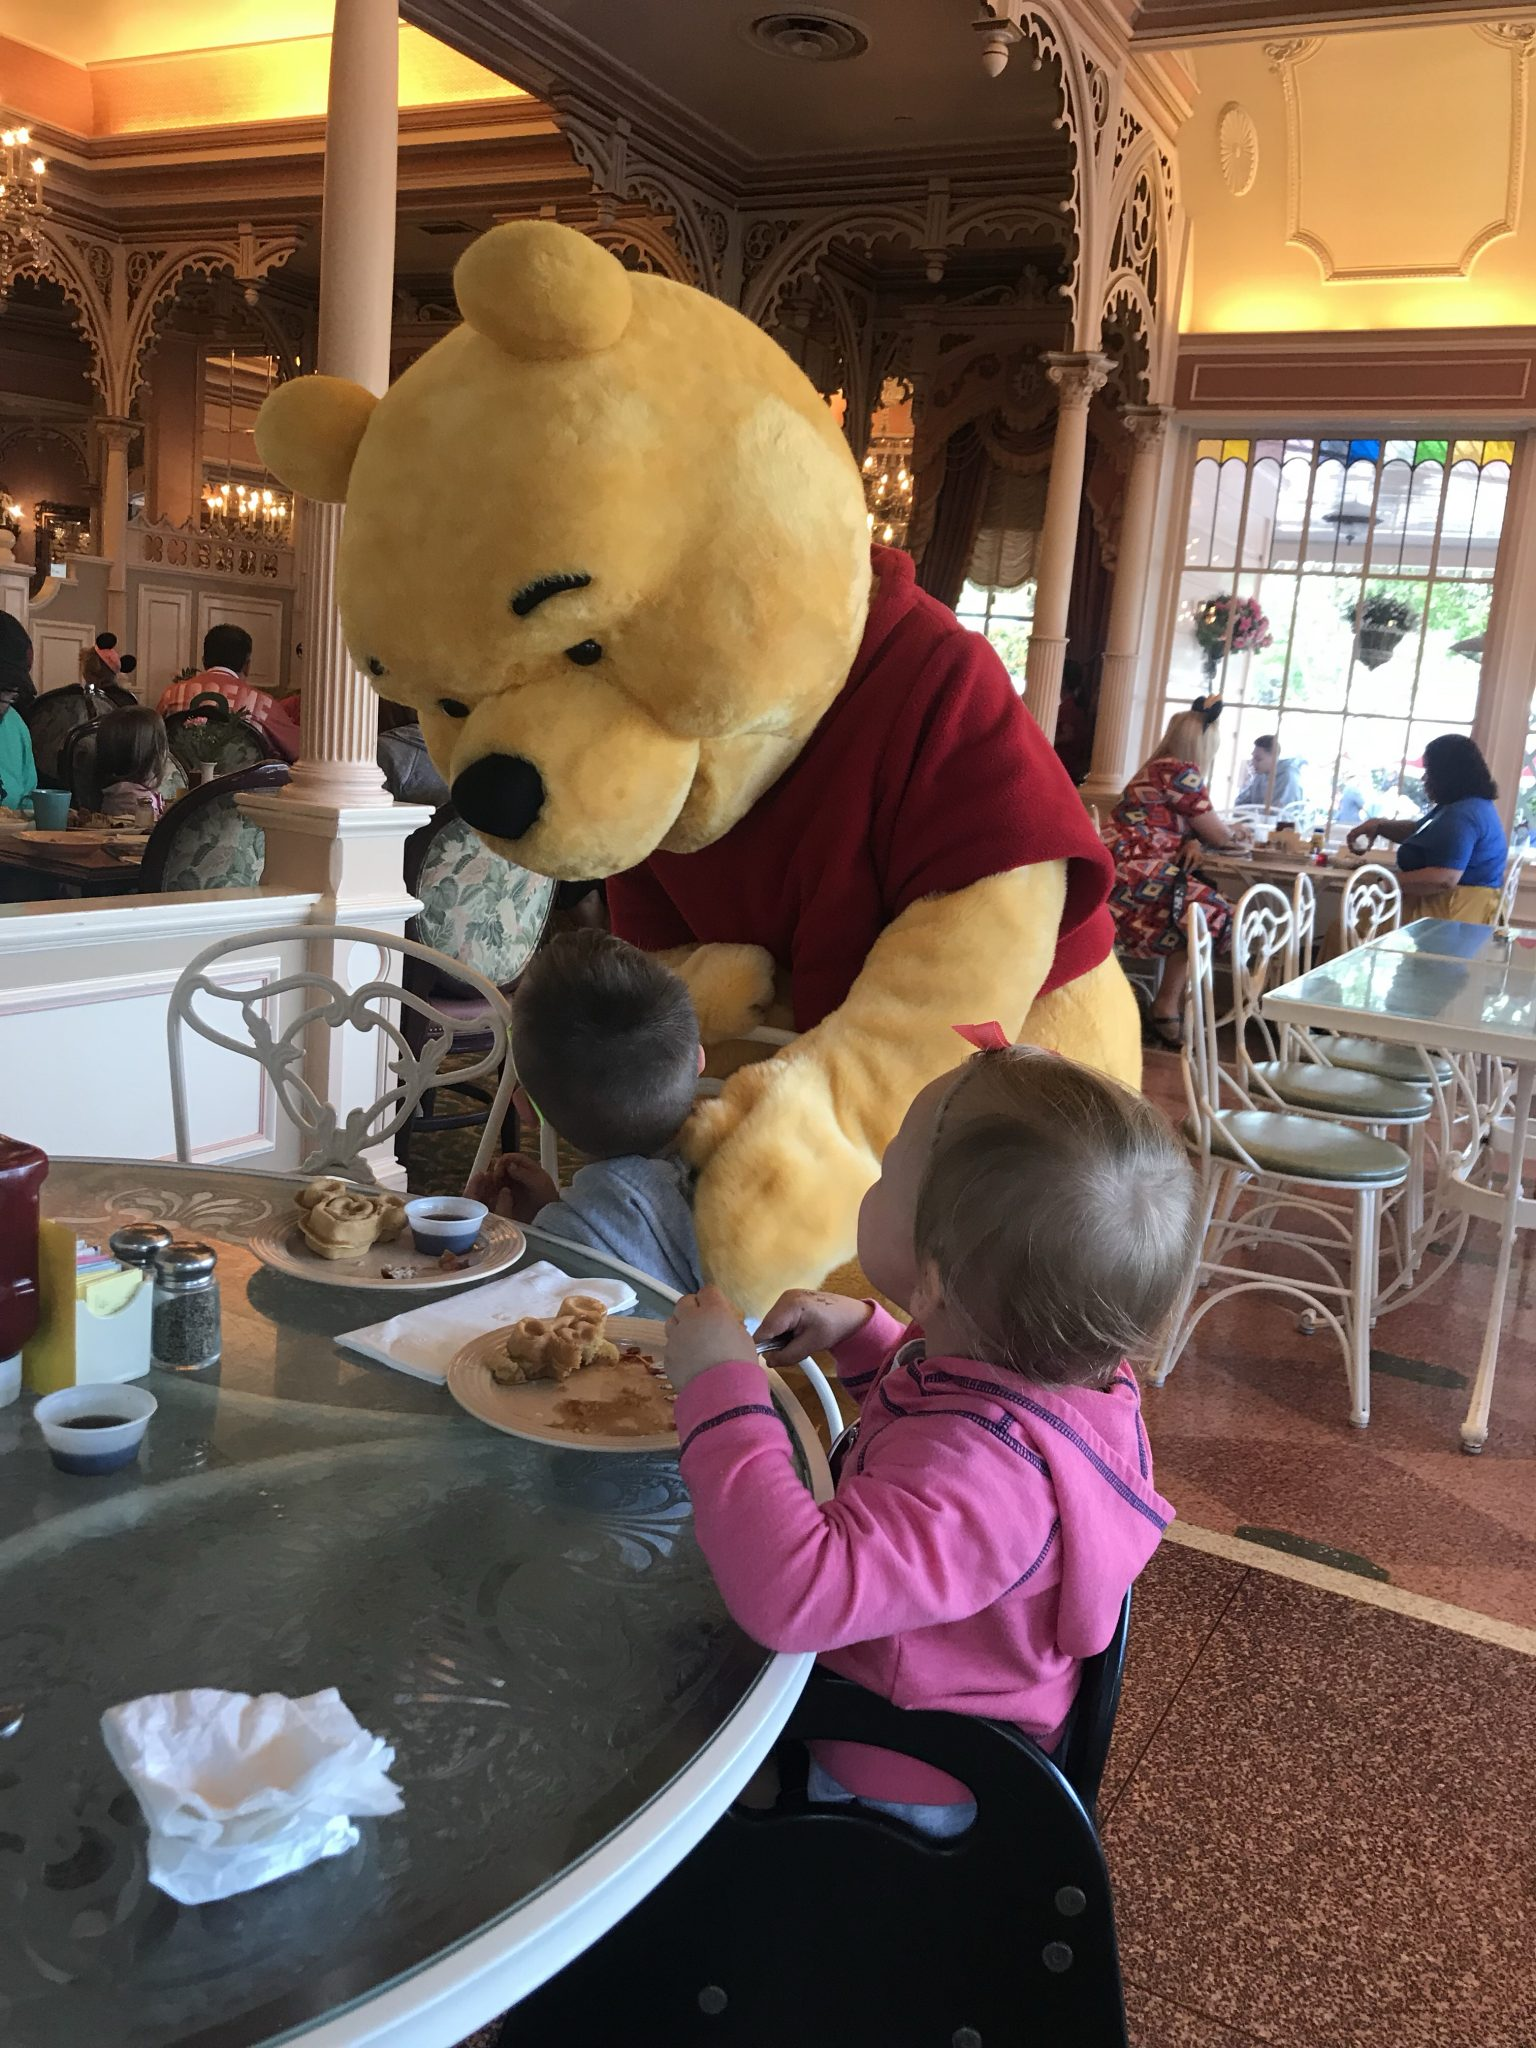 Character breakfast at Disney - our first trip to disneyland